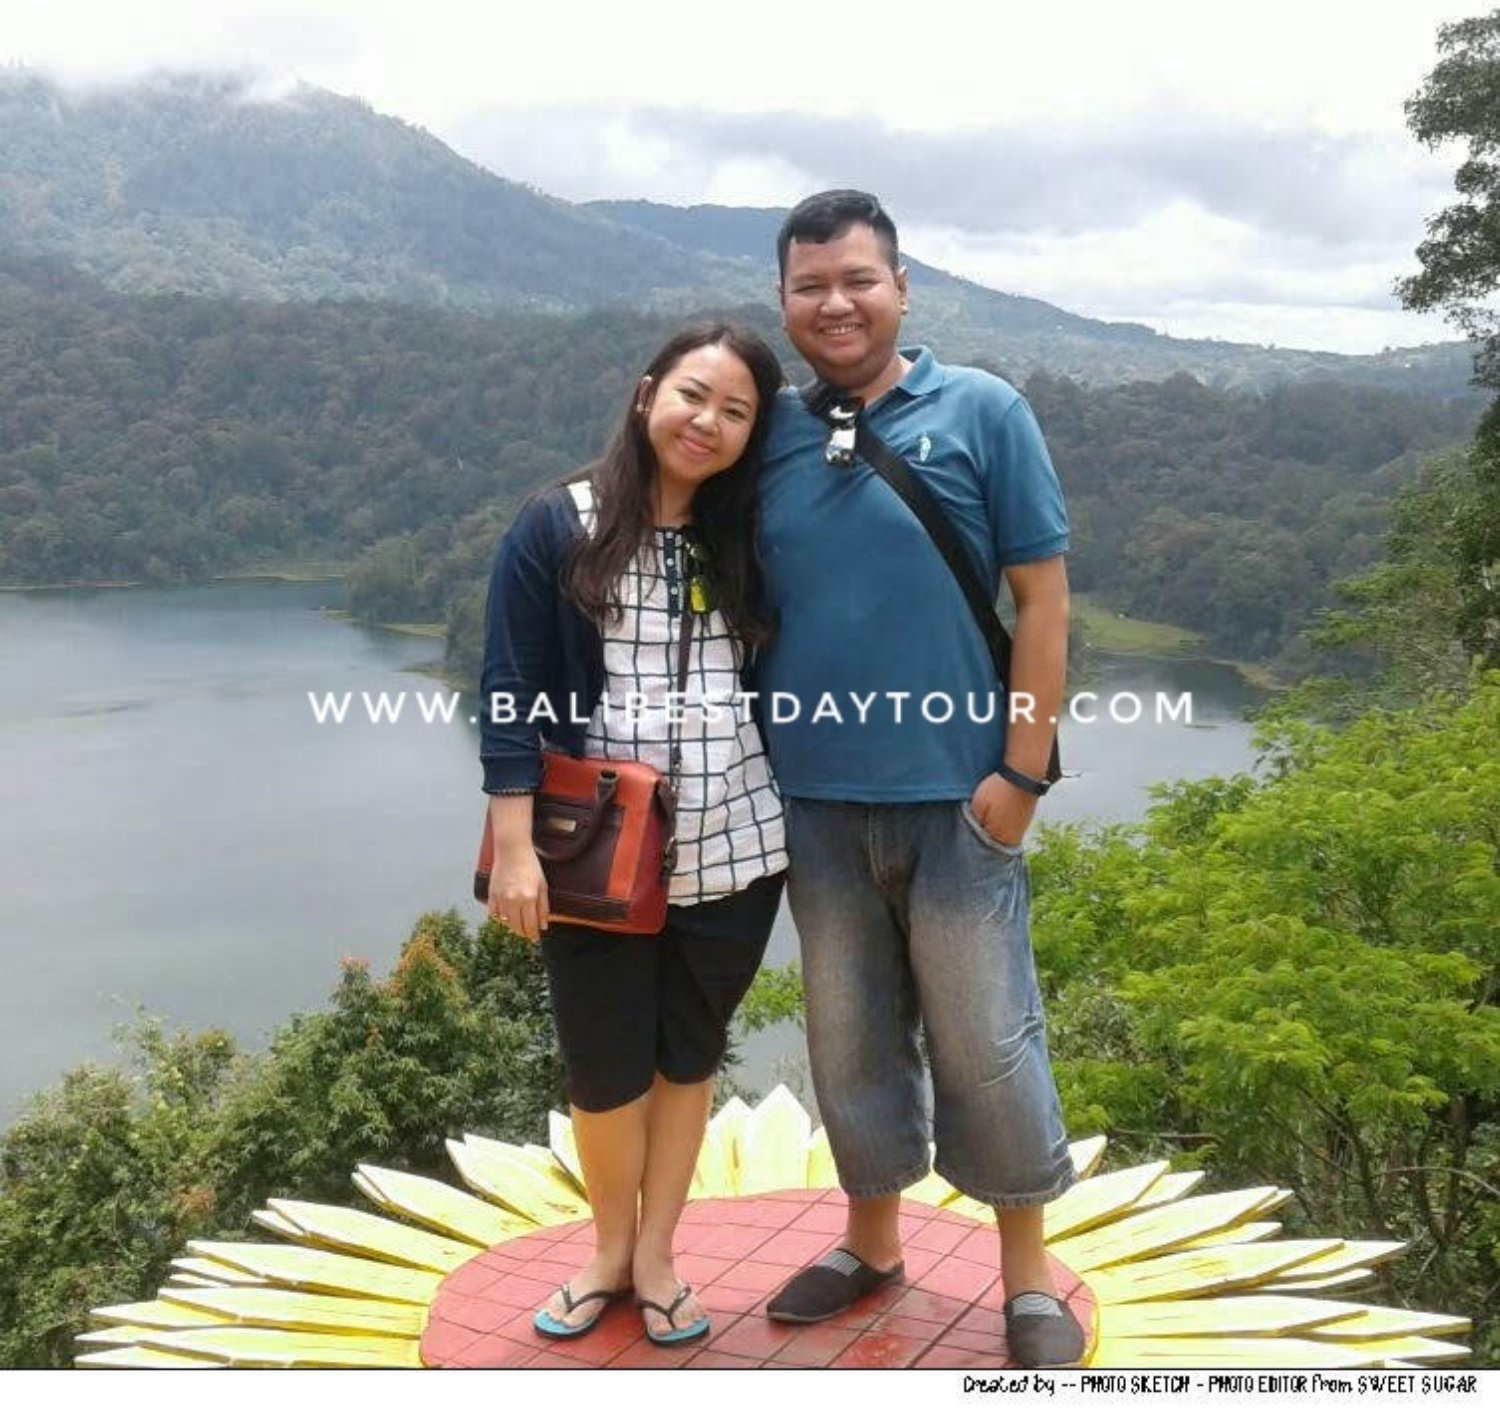 Bedugul is one amazing destination for bali honeymoon tour packages